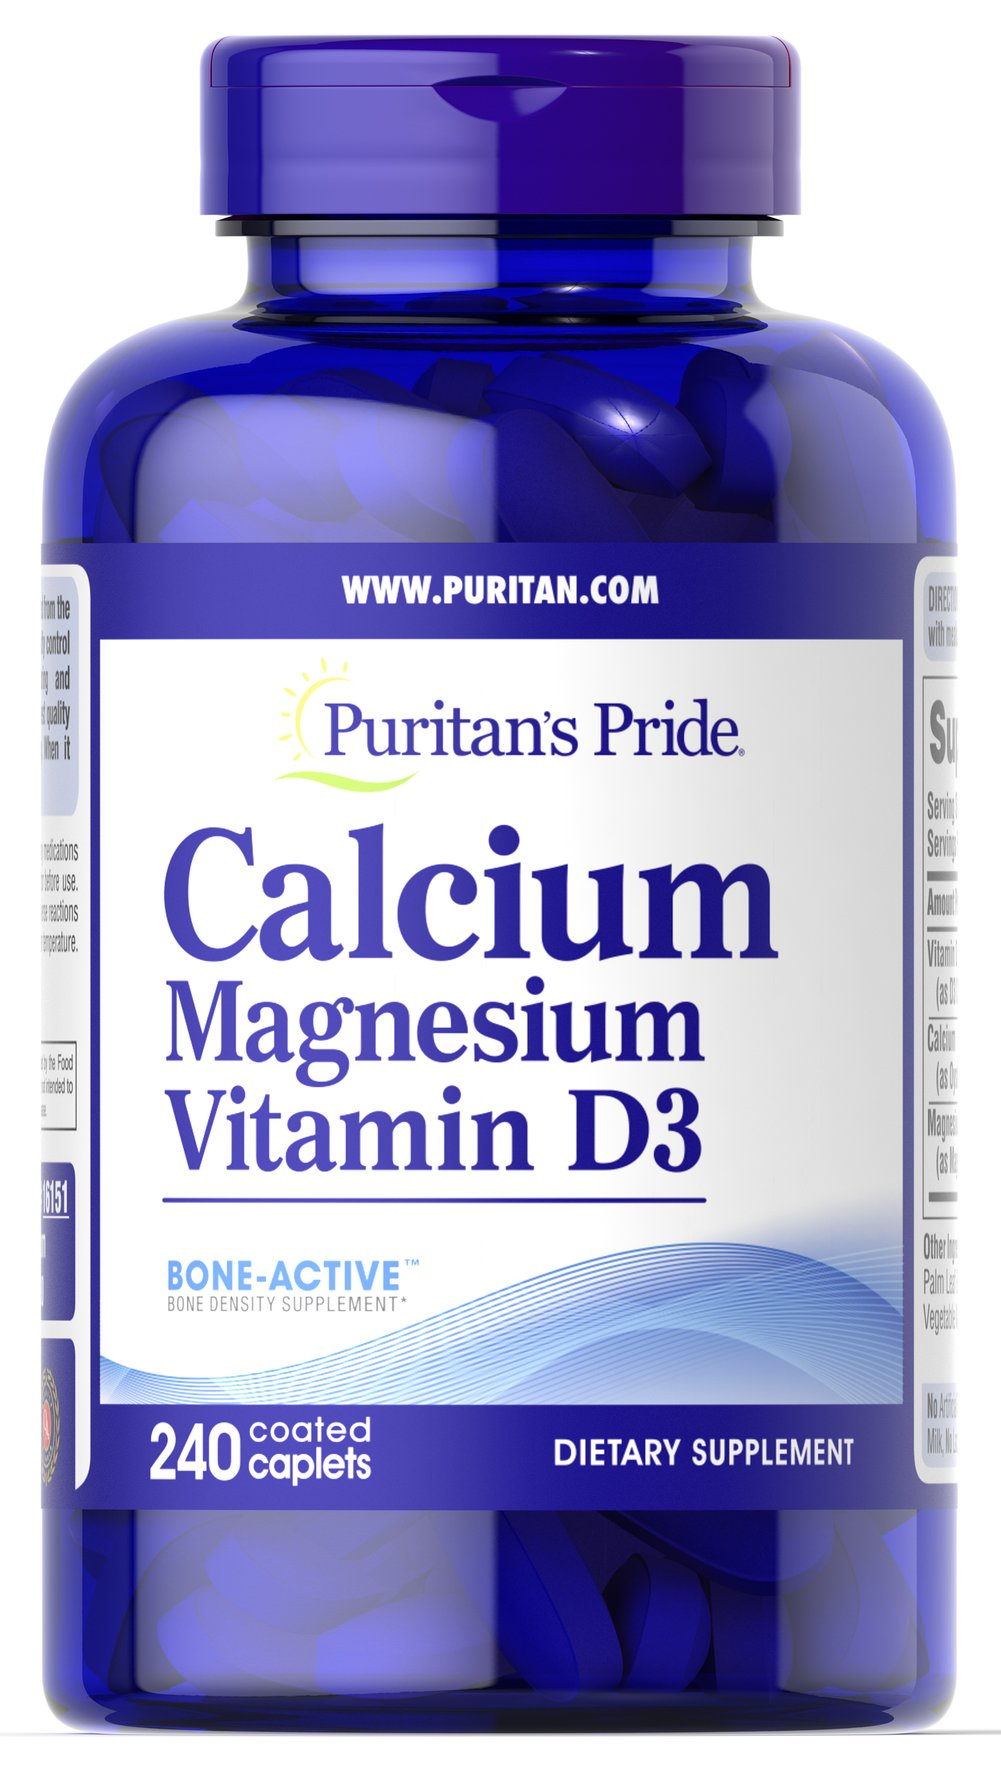 Calcium Magnesium with Vitamin D <p>Hit a triple play with our high-quality Calcium, Magnesium and Vitamin D! Each of these nutrients plays an essential role in maintaining bone health.** Calcium and Magnesium are also important for muscle contractions, and Vitamin D contributes to immune system health.** Calcium is the primary mineral responsible for strong bones and teeth, and Magnesium and Vitamin D are essential for calcium transport and absorption.**</p><p>Coated tablets d